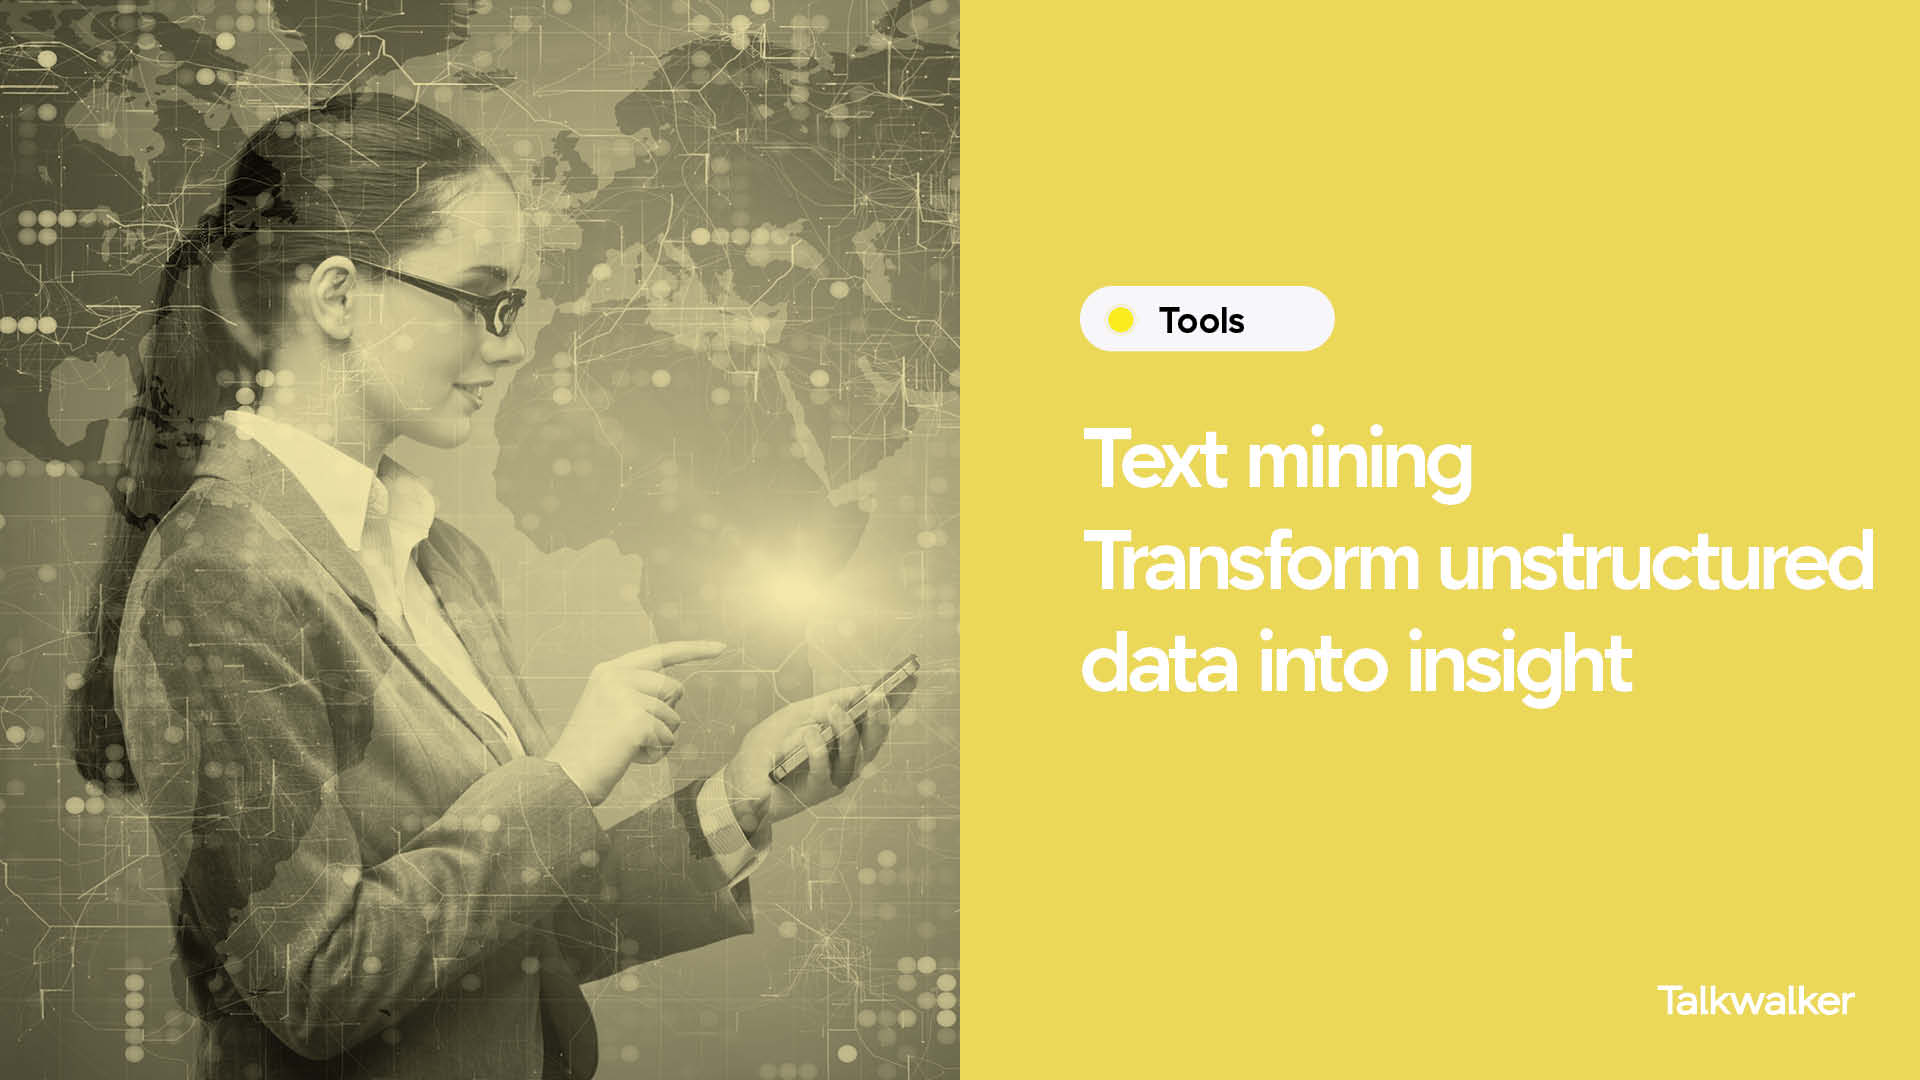 Text mining. Transform unstructured data into insights. Person using smartphone, with world map behind and numerous data points mapped.